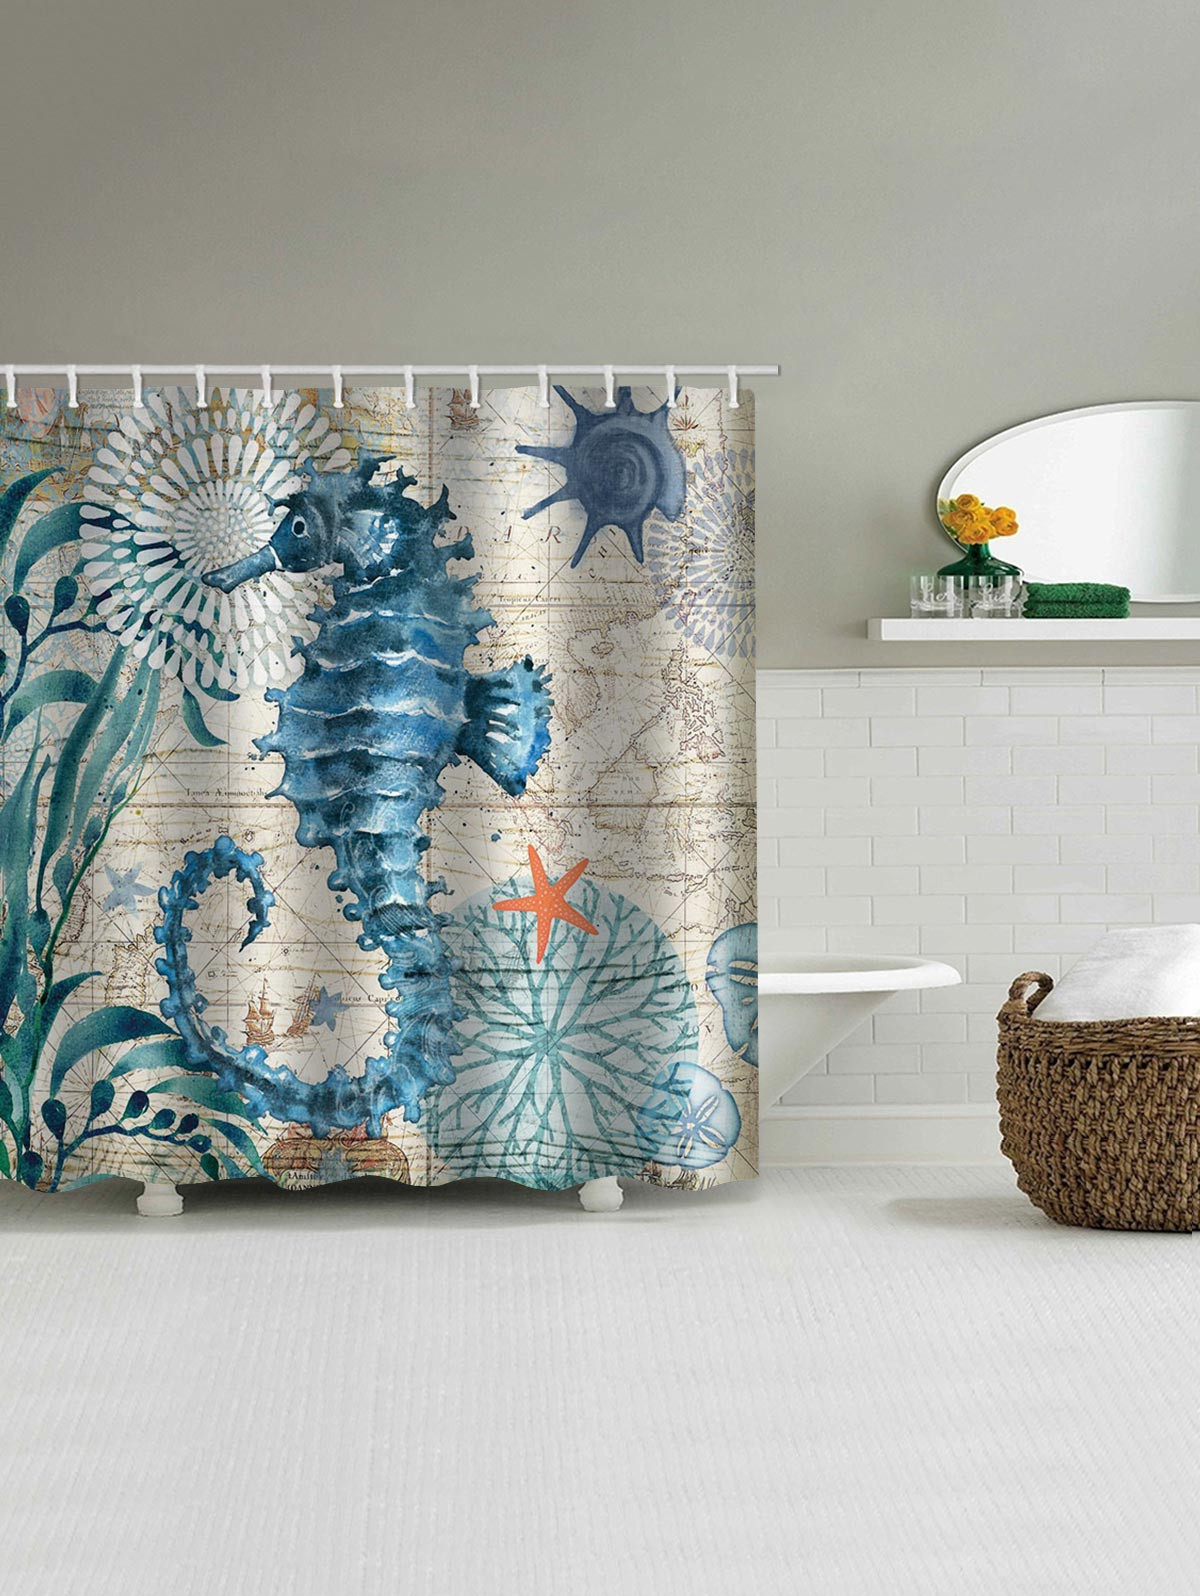 Nautical Sea Horse Print Waterproof Bathroom Shower Curtain